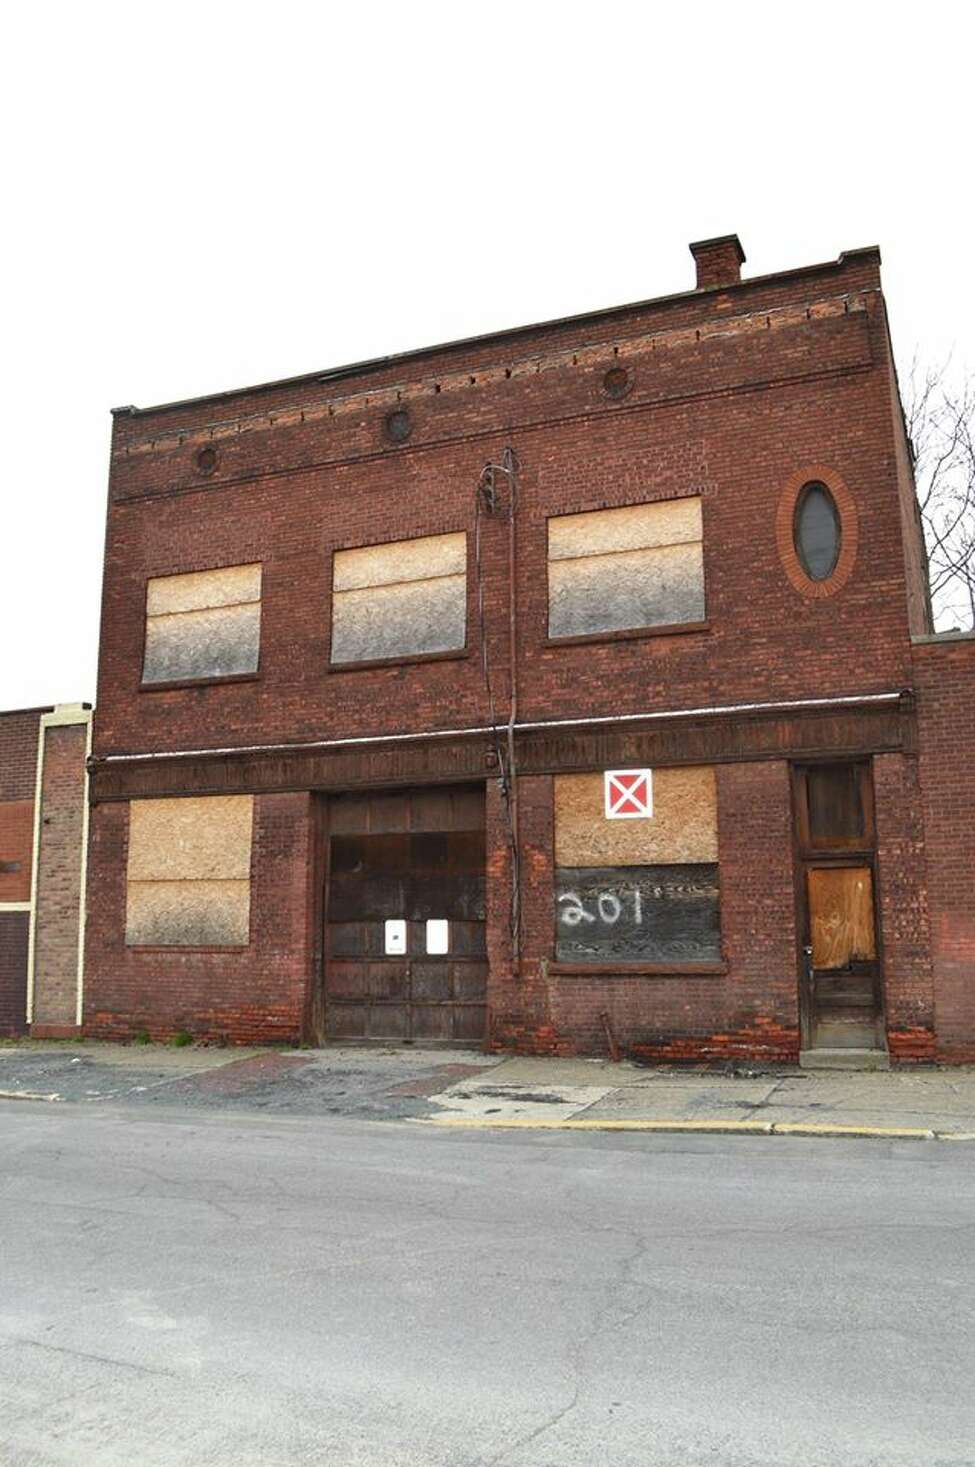 A photo of 201 Elk Street, the Albany County-owned building that was demolished this week after its roof caved in.